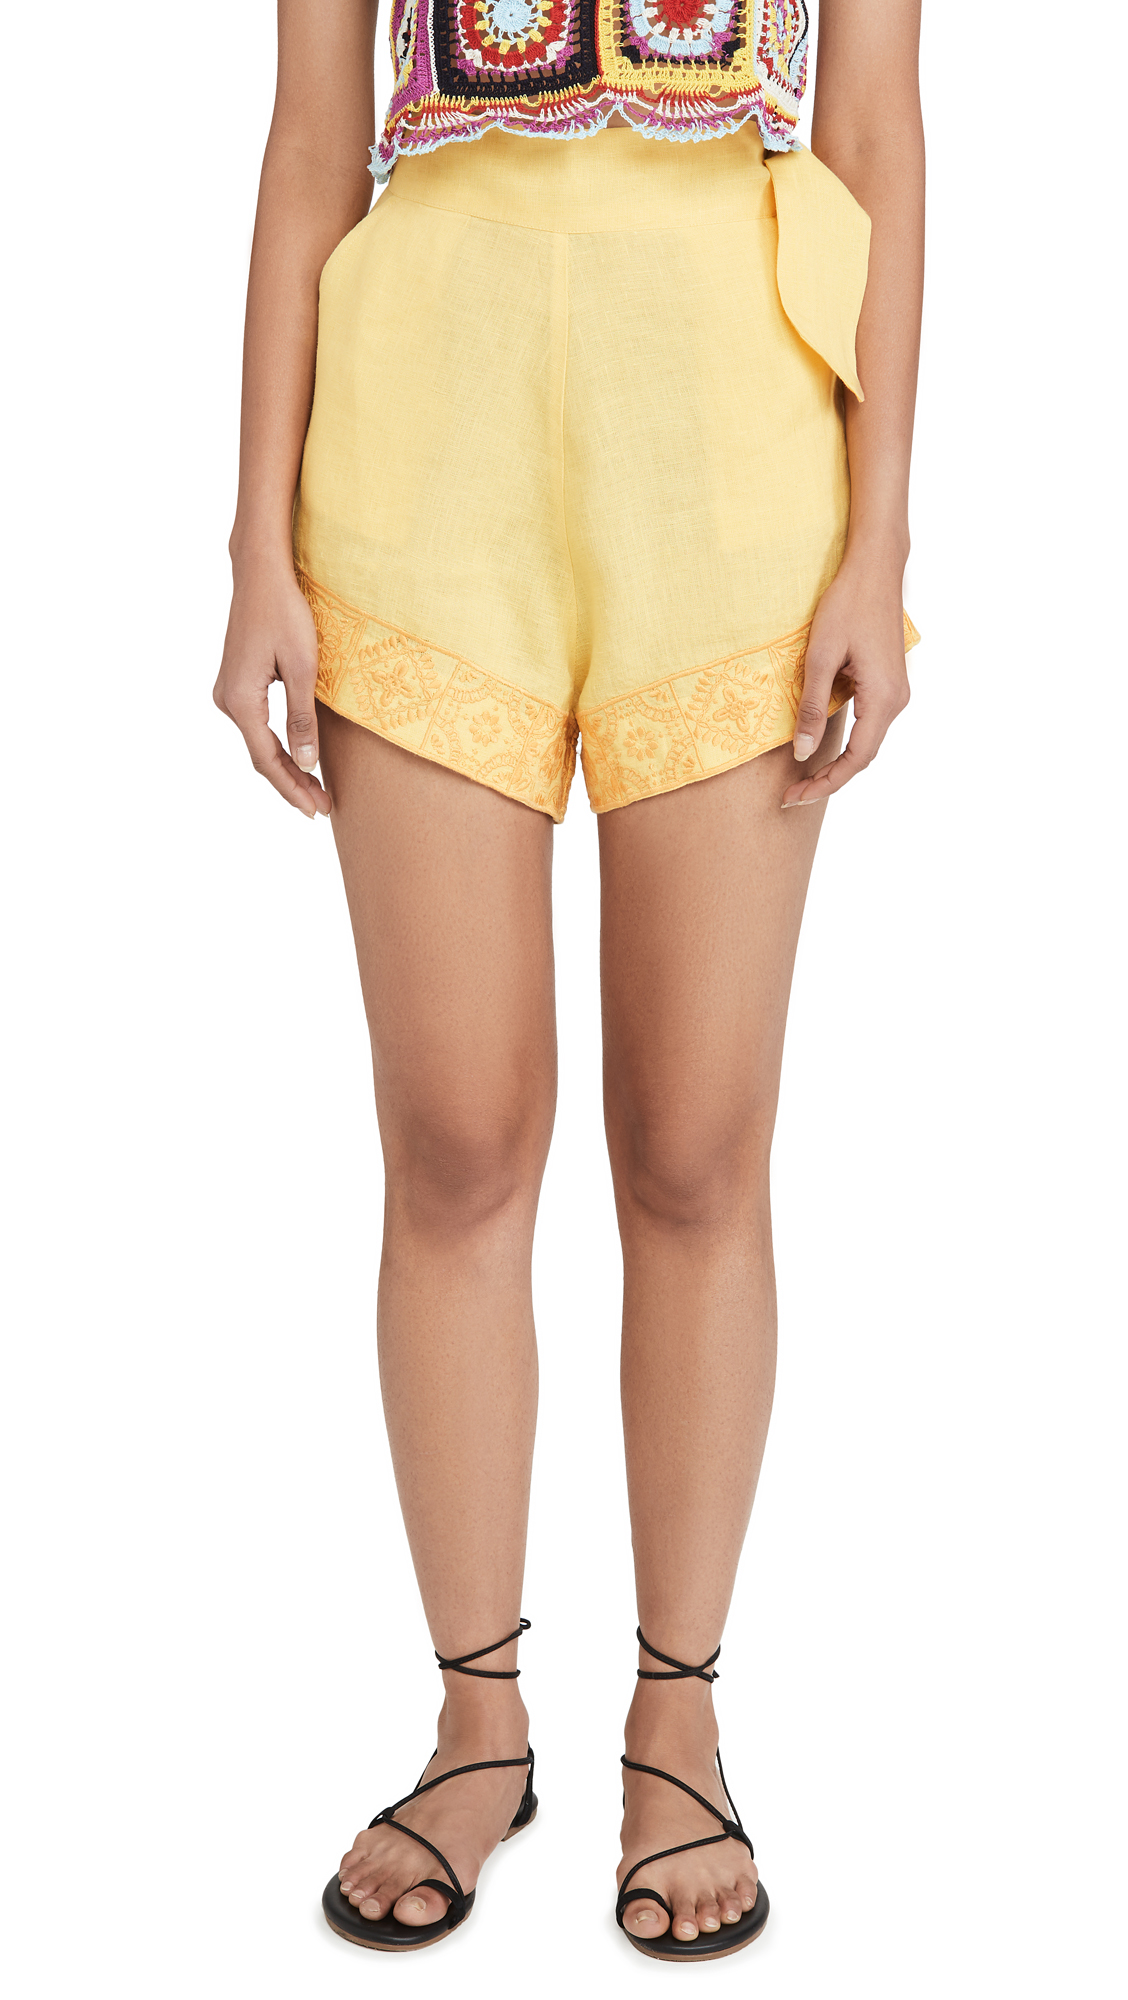 Carolina K Sandy Shorts